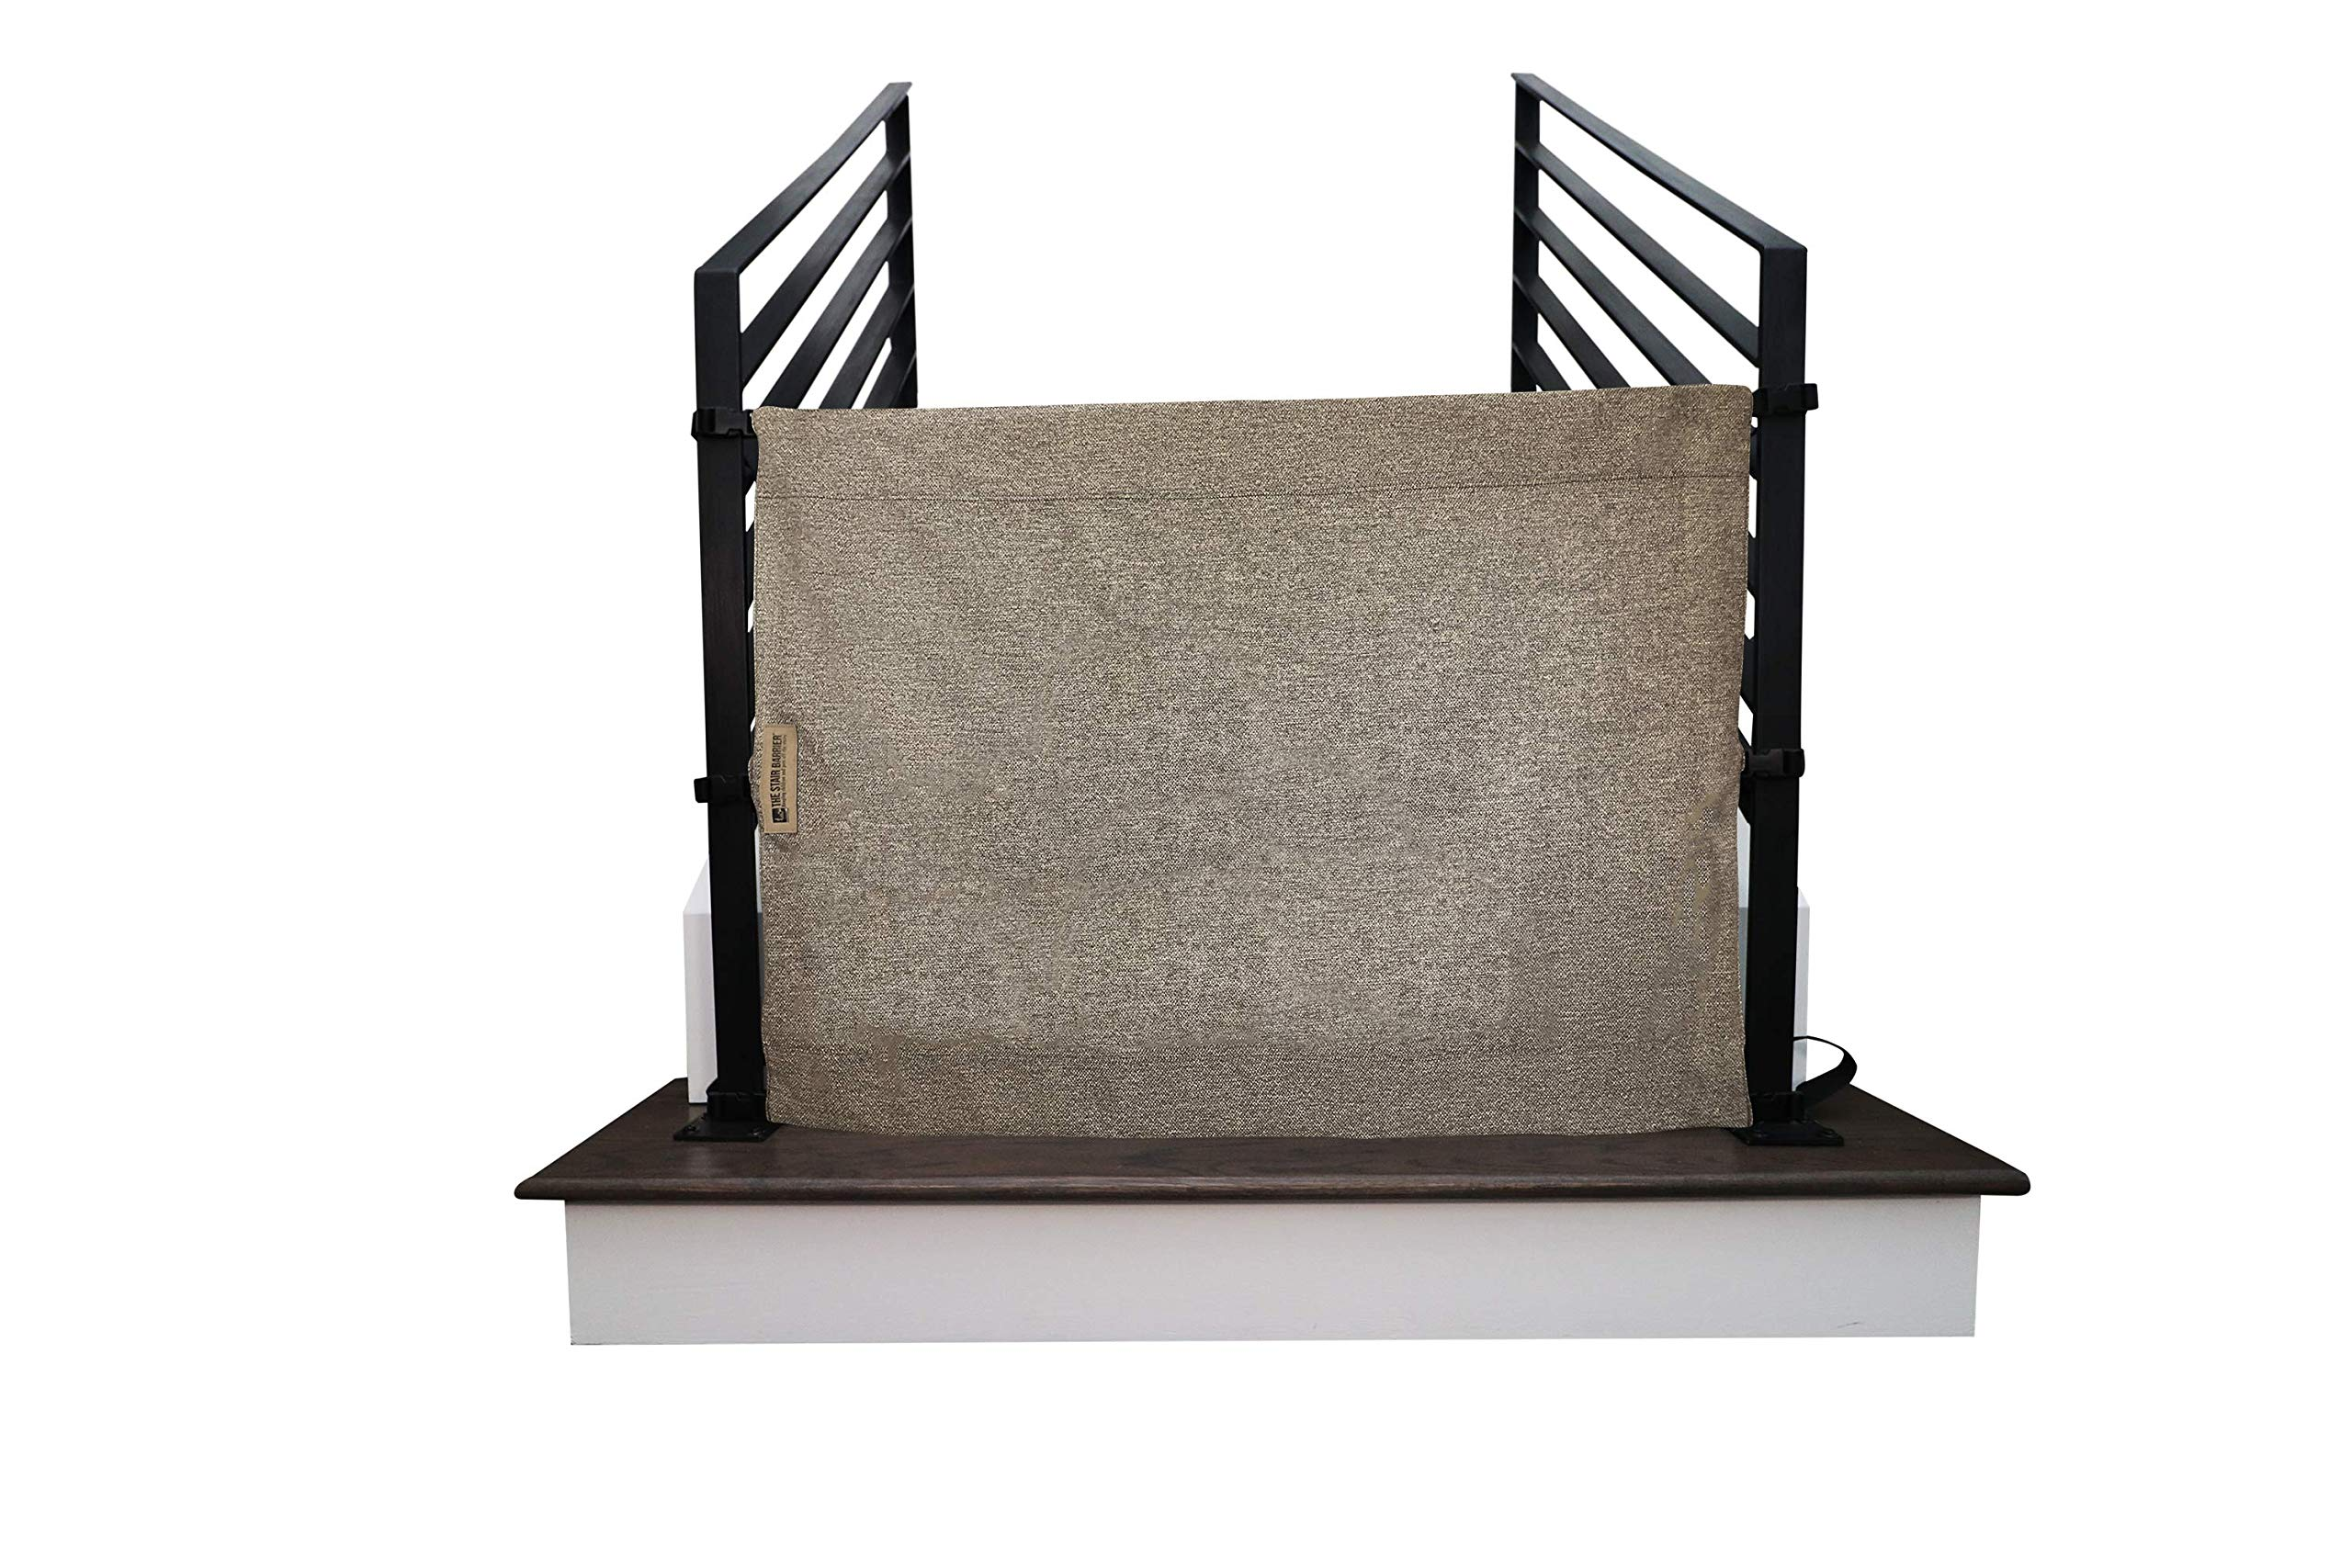 The Stair Barrier Baby and Pet Gate: Banister-to-Banister Fabric Safety Gate - Made in The USA, New 2019